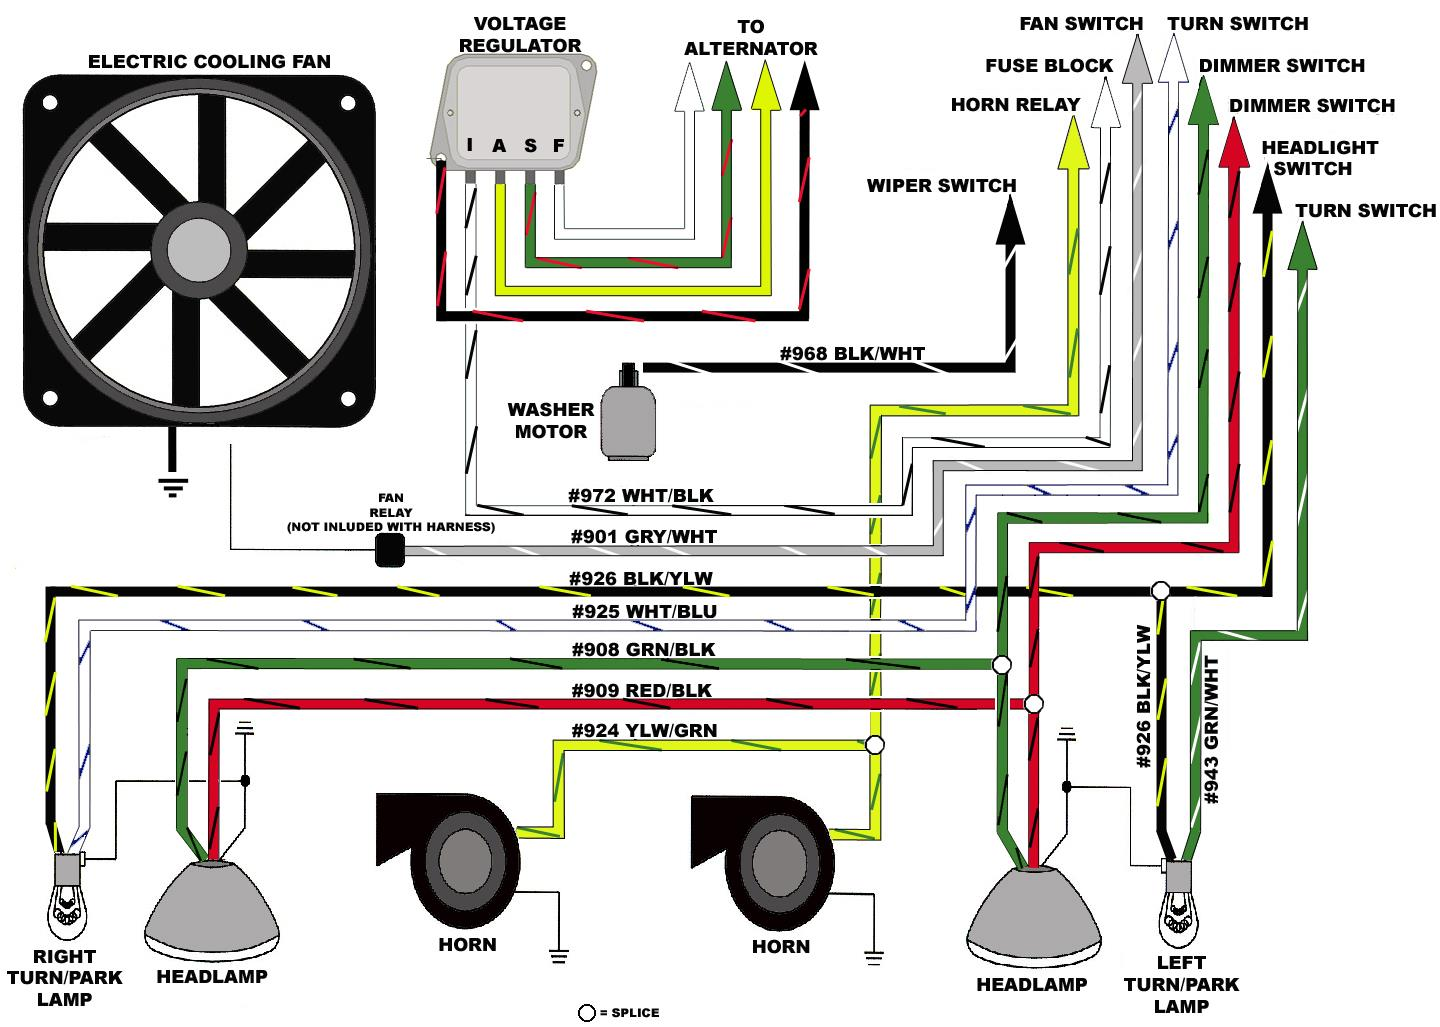 Wire Harness Installation Instructions Pdf Fig Back Of Typical Alternator Illustrating Wiring Figure 8 Headlight Section B With The Wires Routed Over